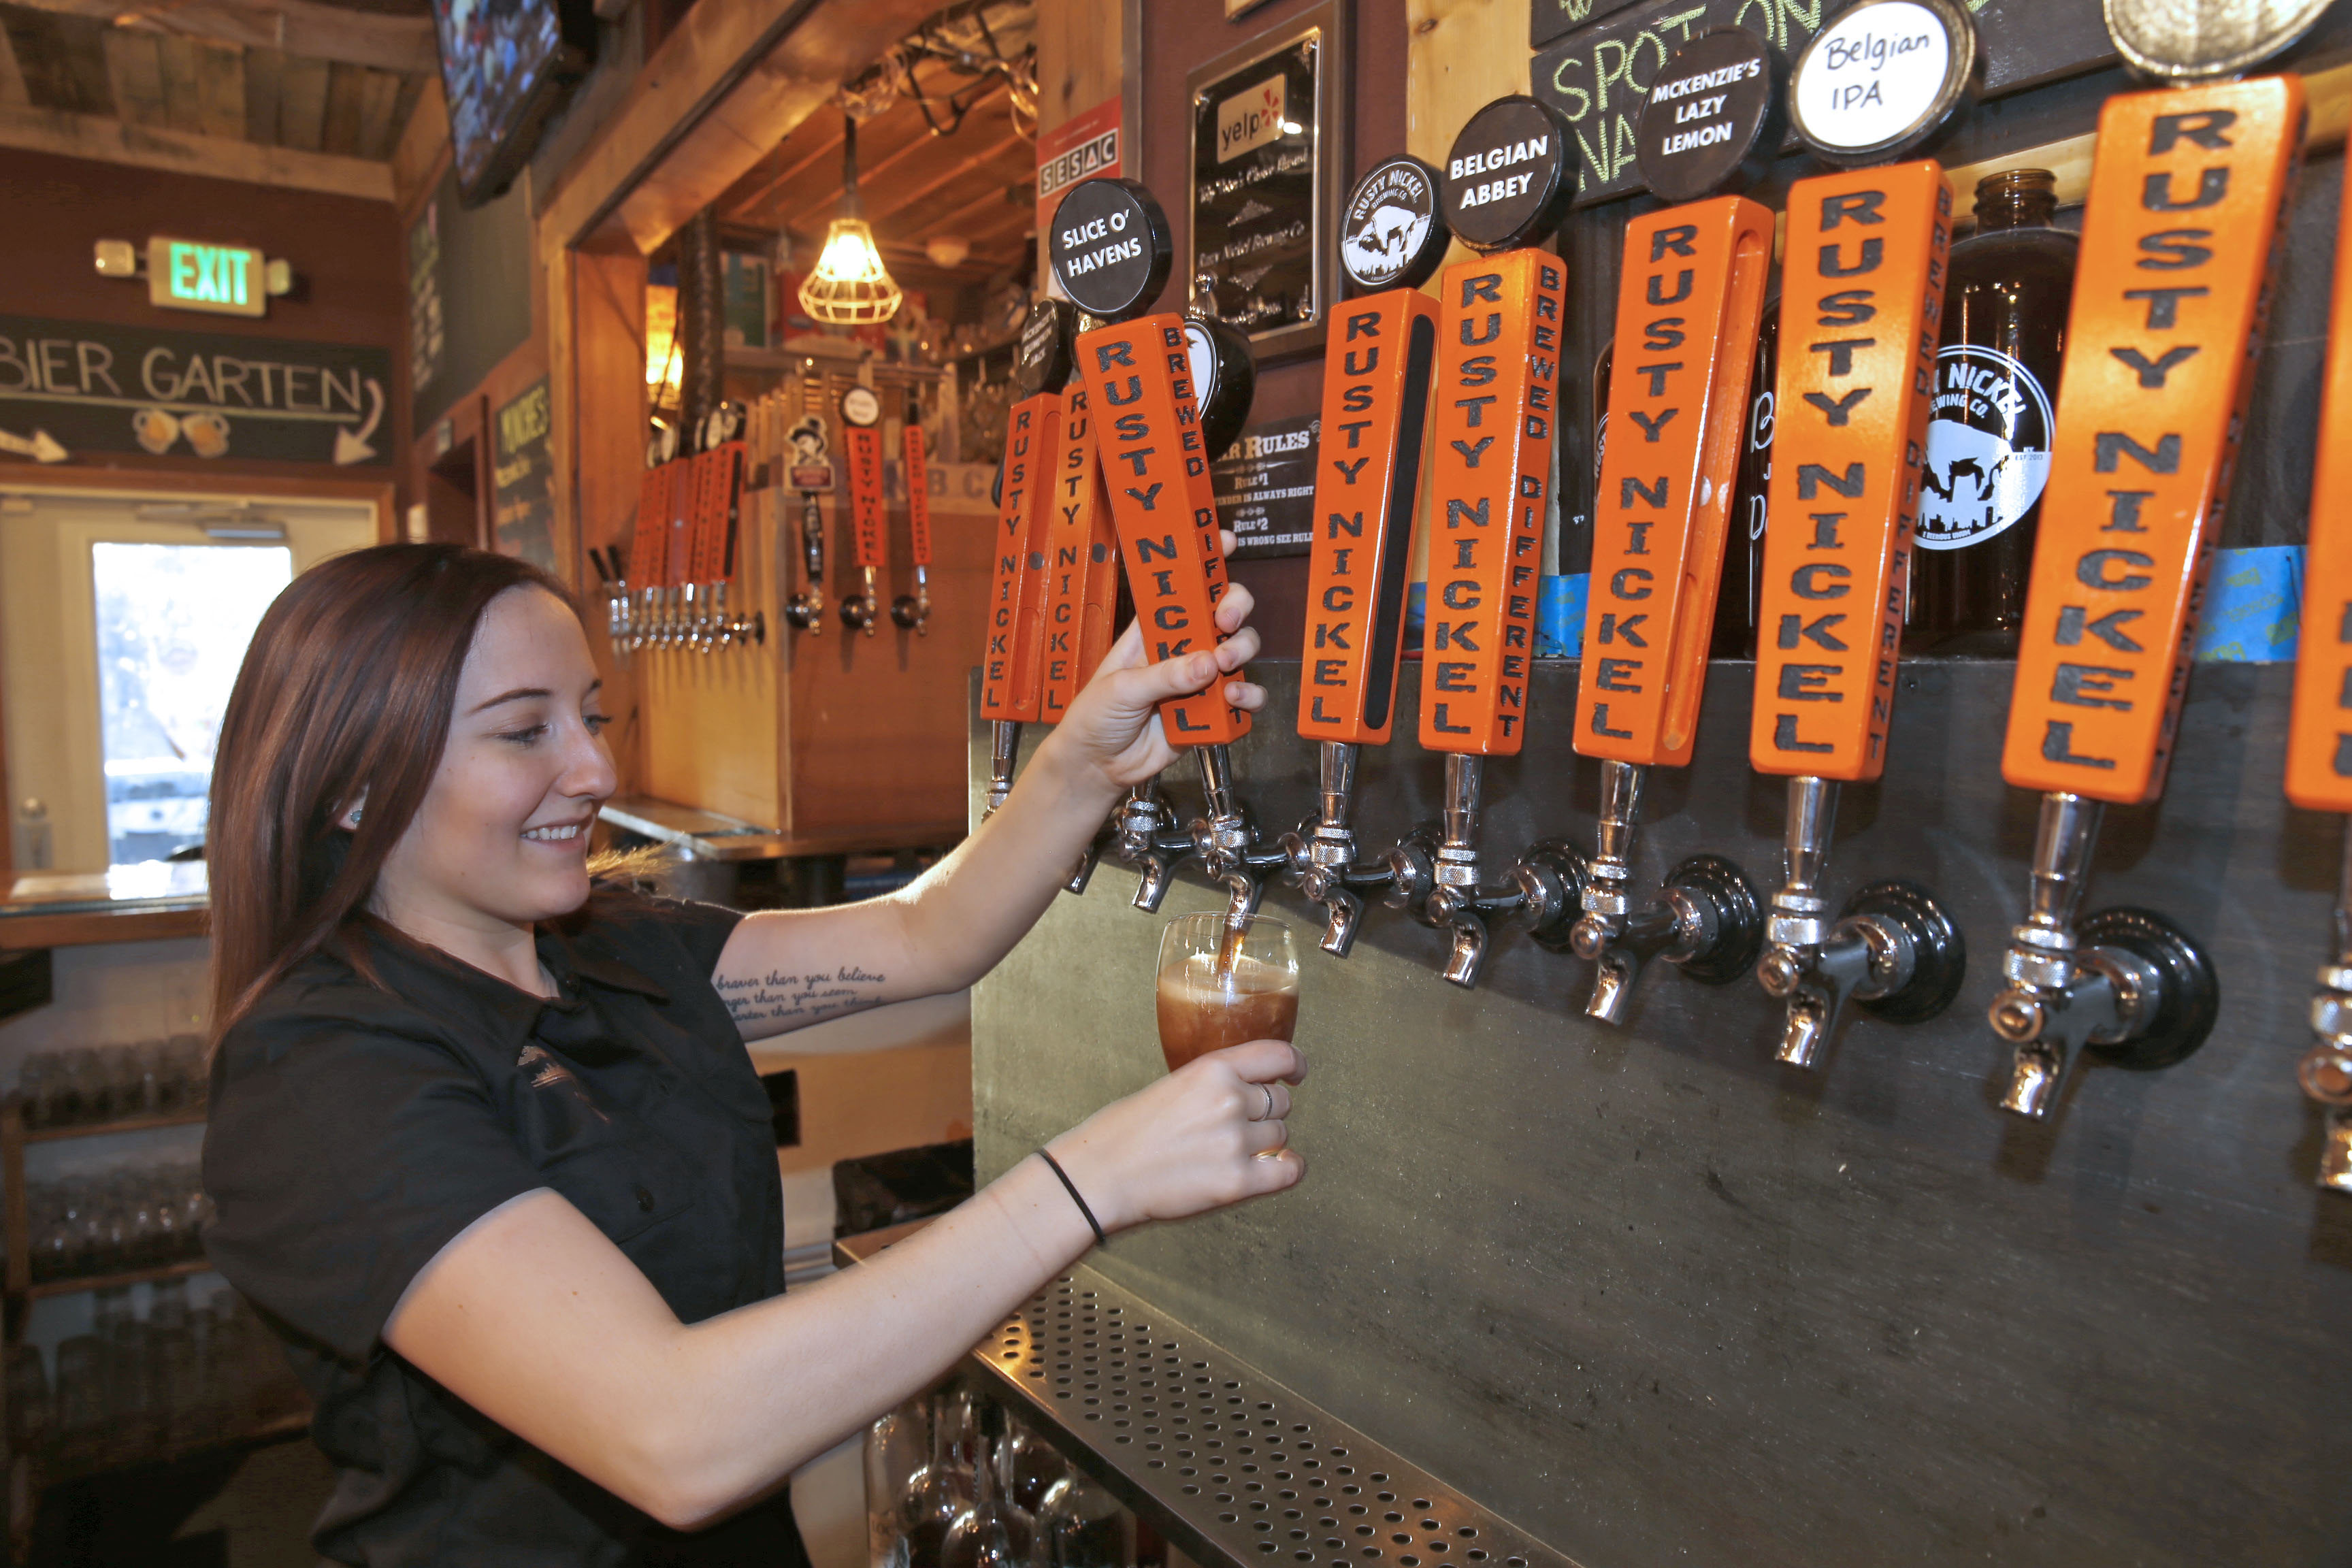 Margaret Cavese pours a glass of the hearty Slice of Havens at the Rusty Nickel Brewing Co.  (Robert Kirkham/Buffalo News)